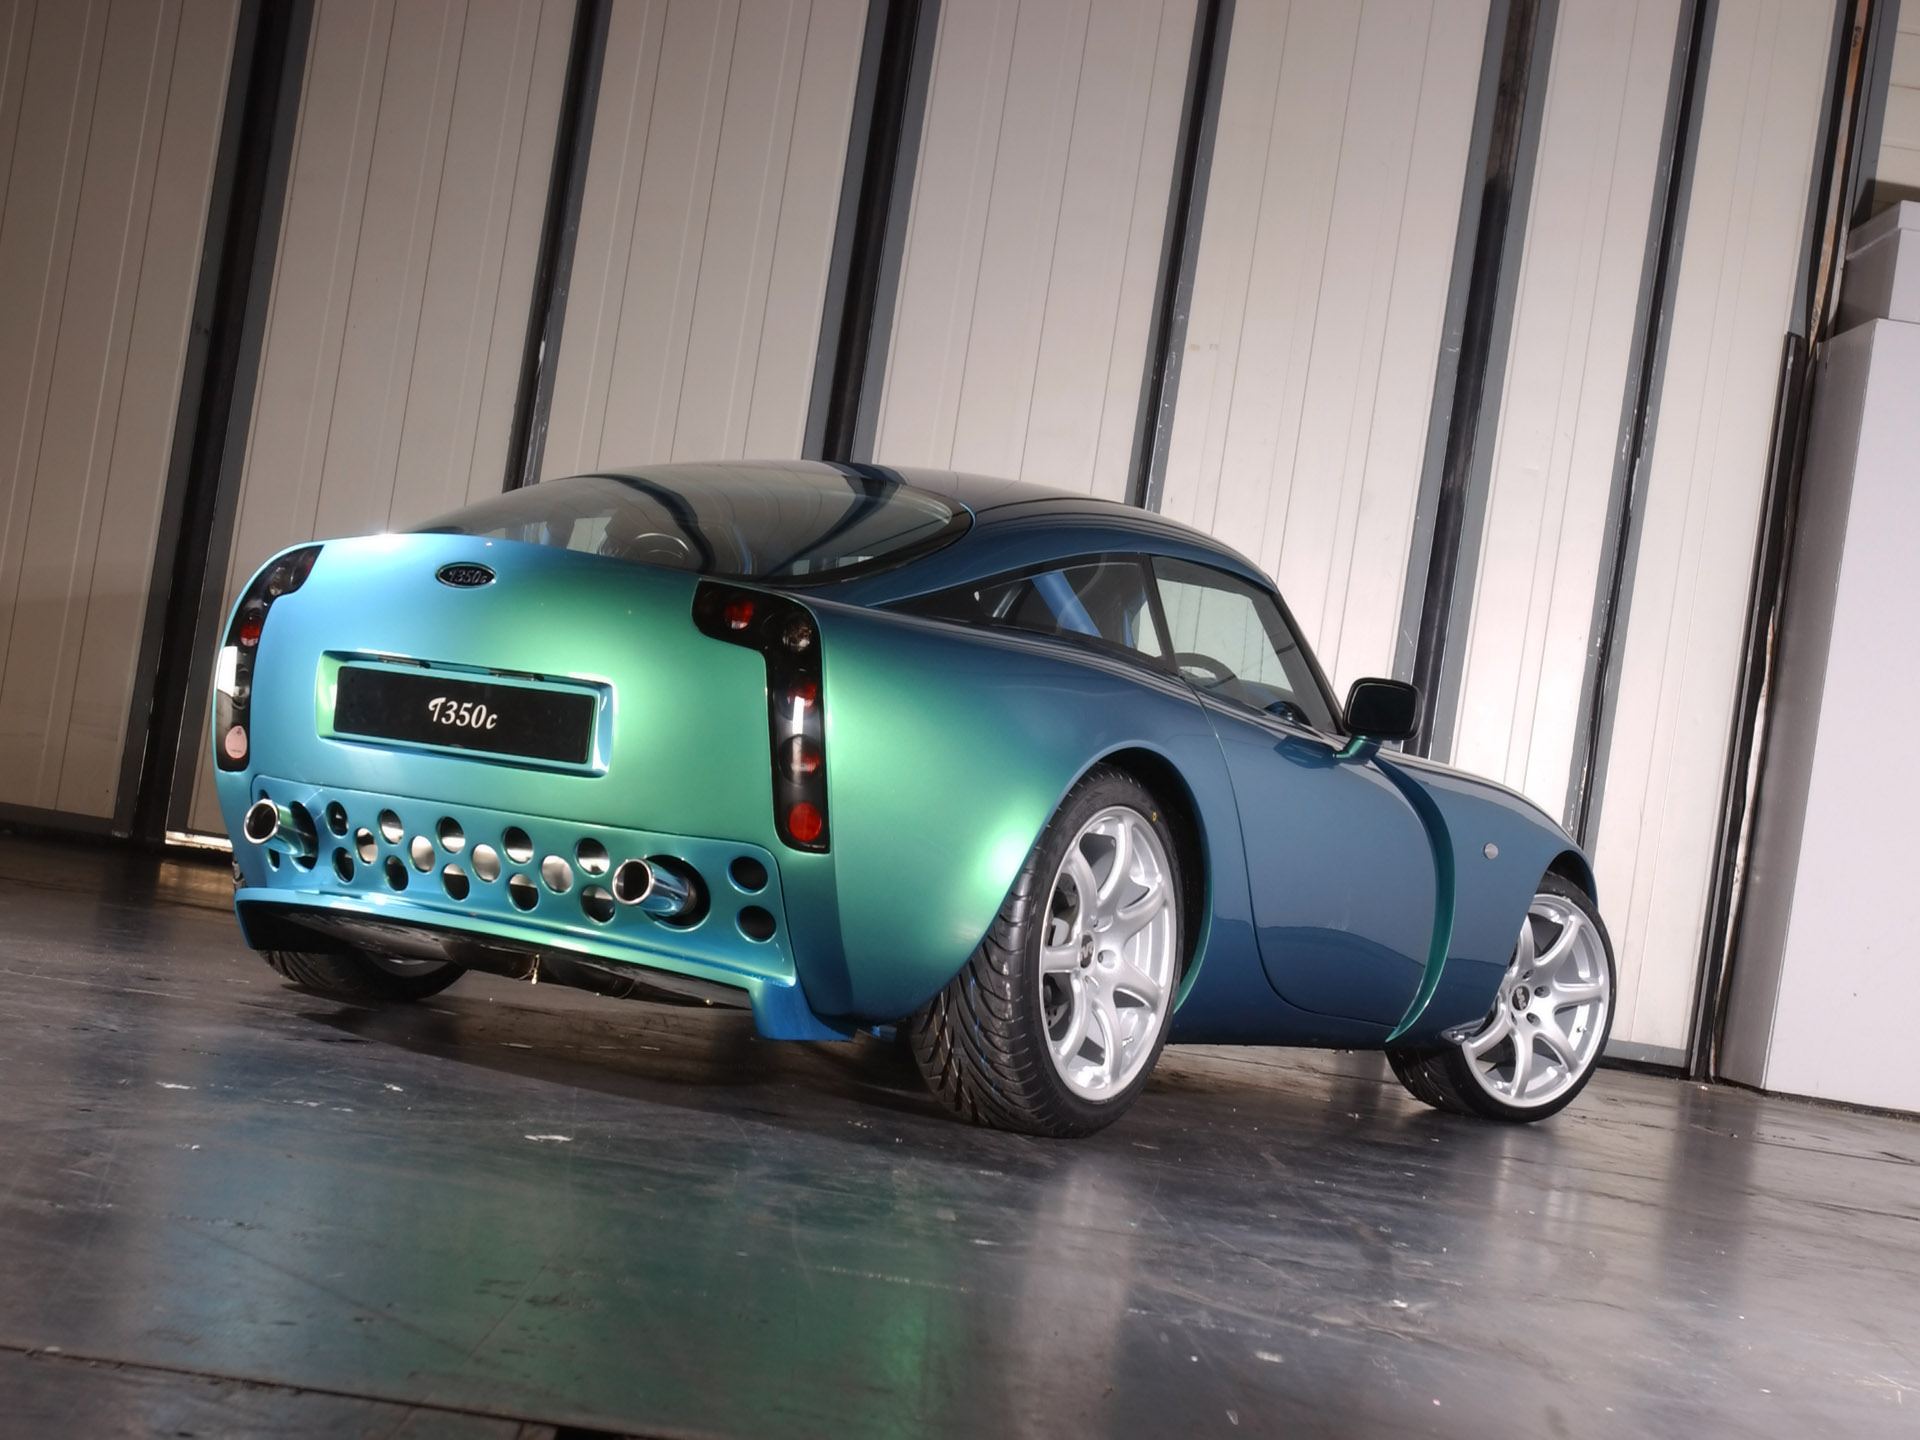 Tvr t350t photo - 1